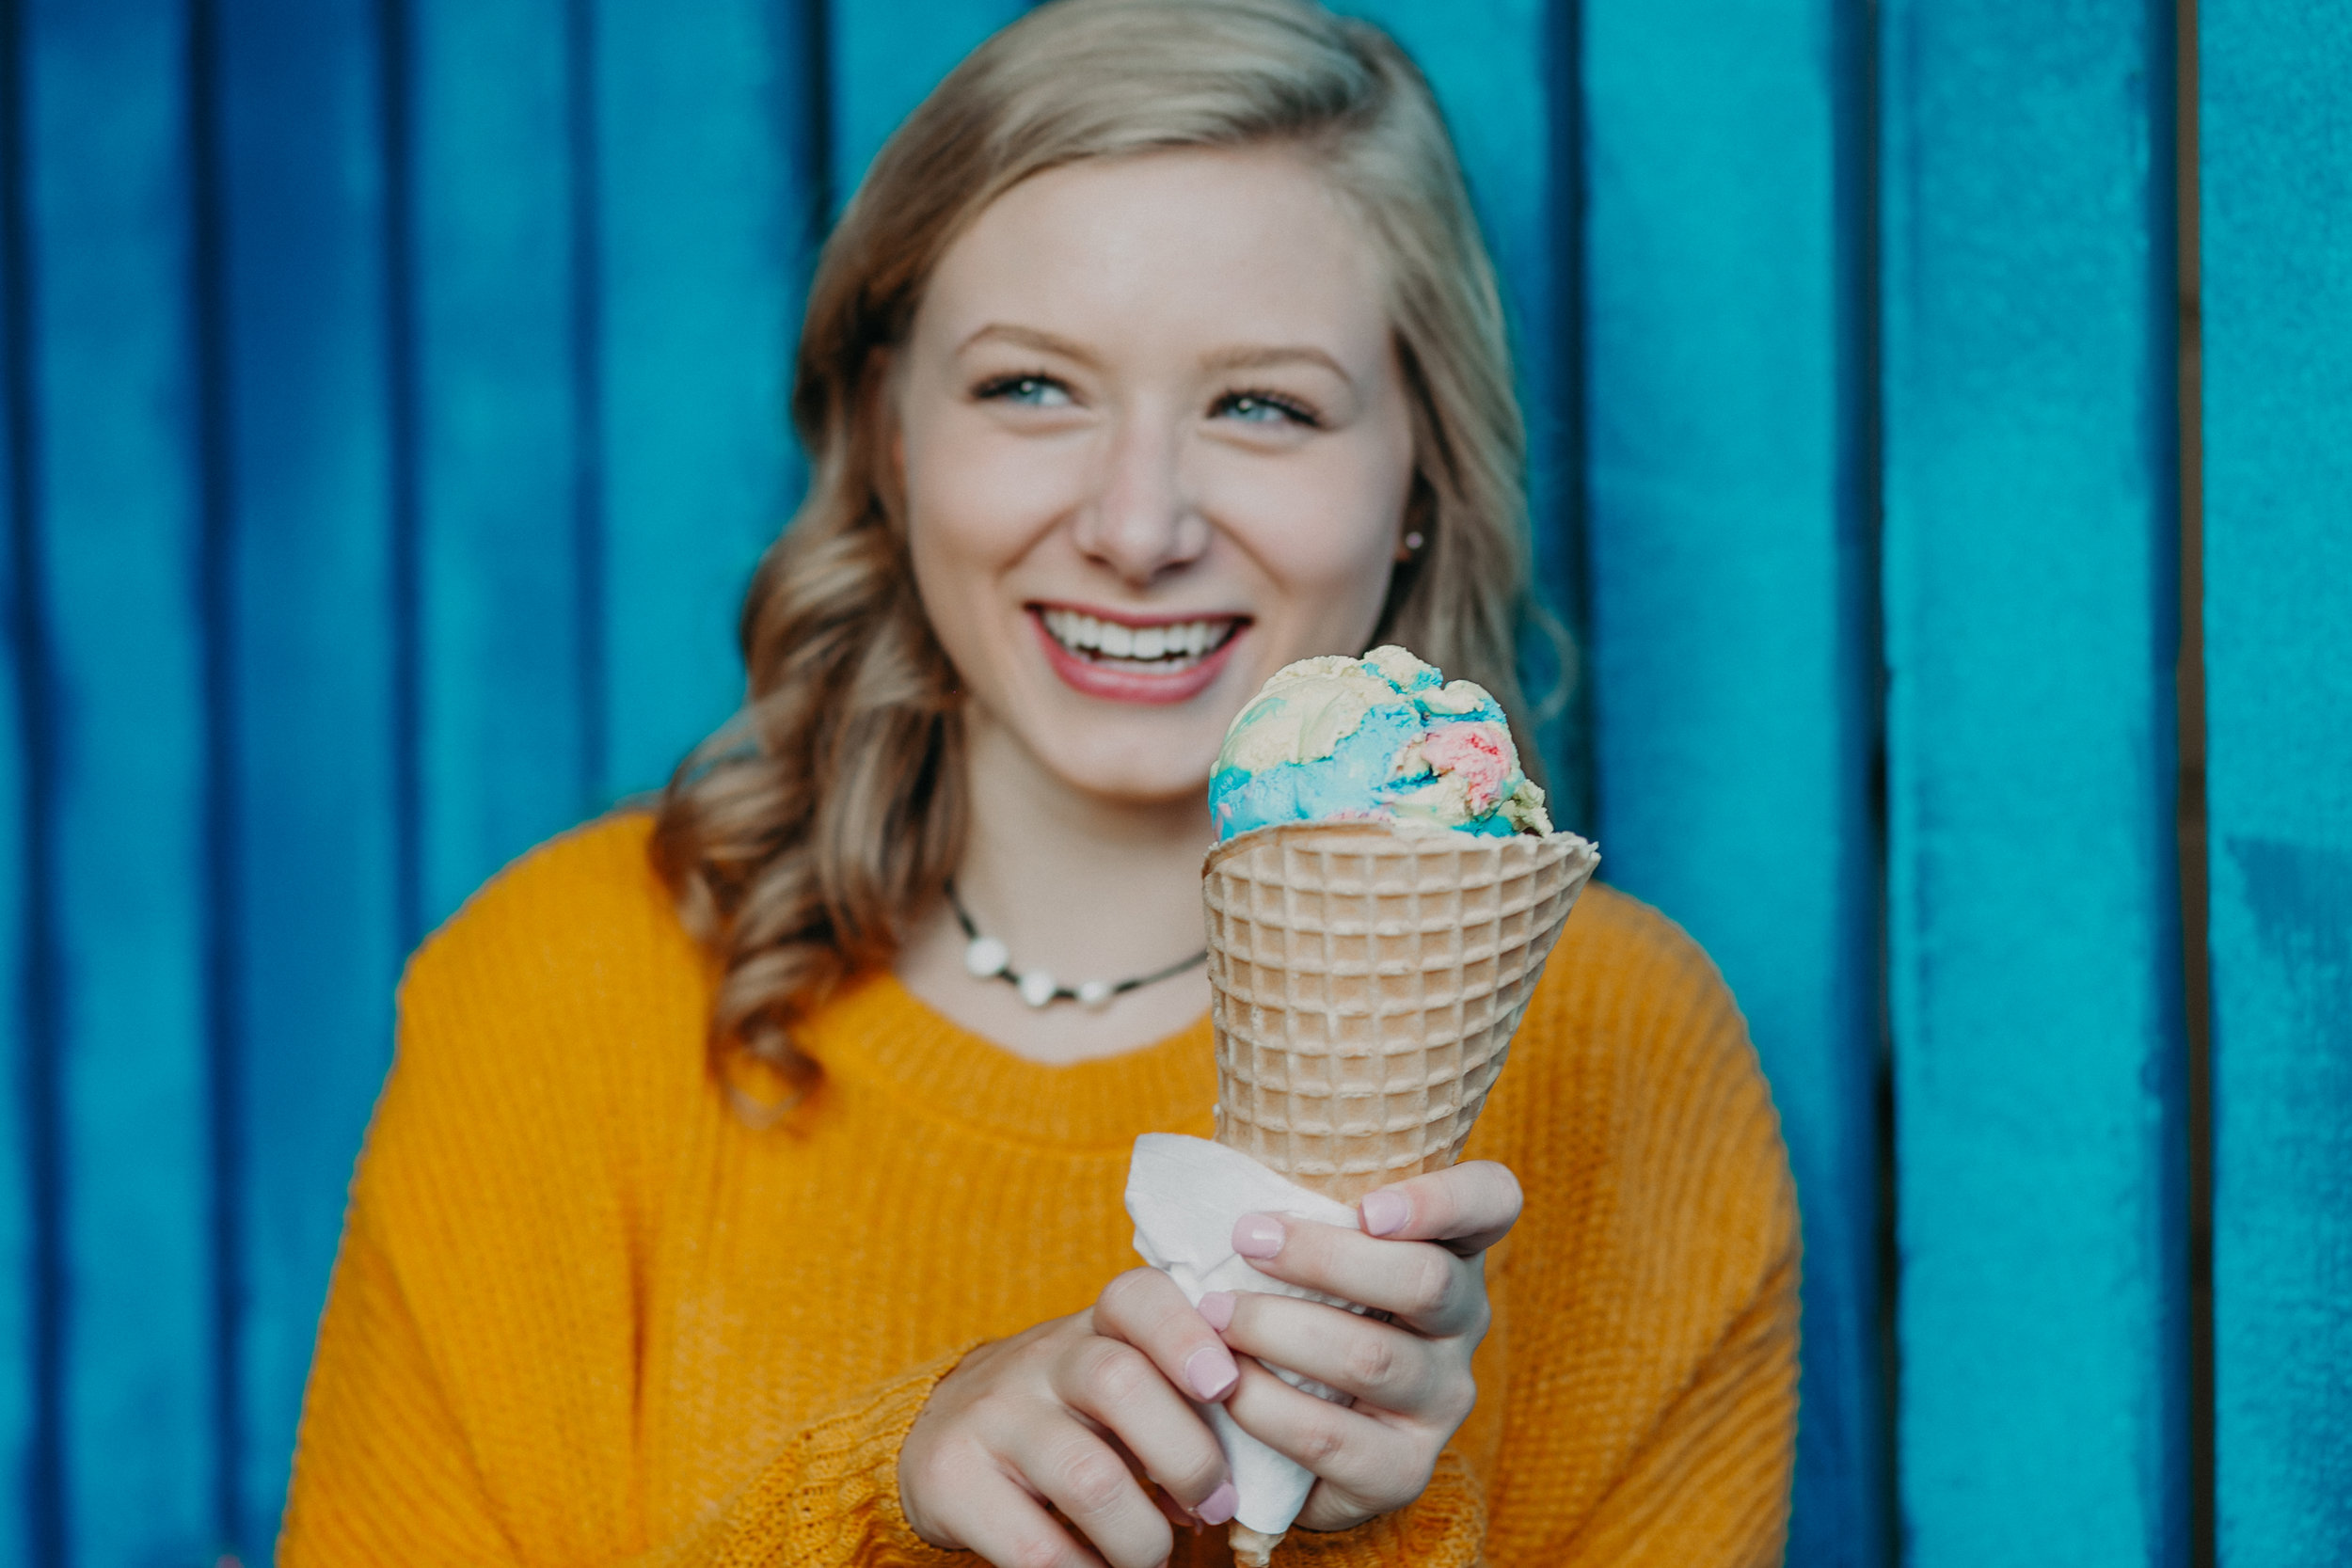 superman ice cream cone held by a smiling senior during her senior photo session in Hudson WI